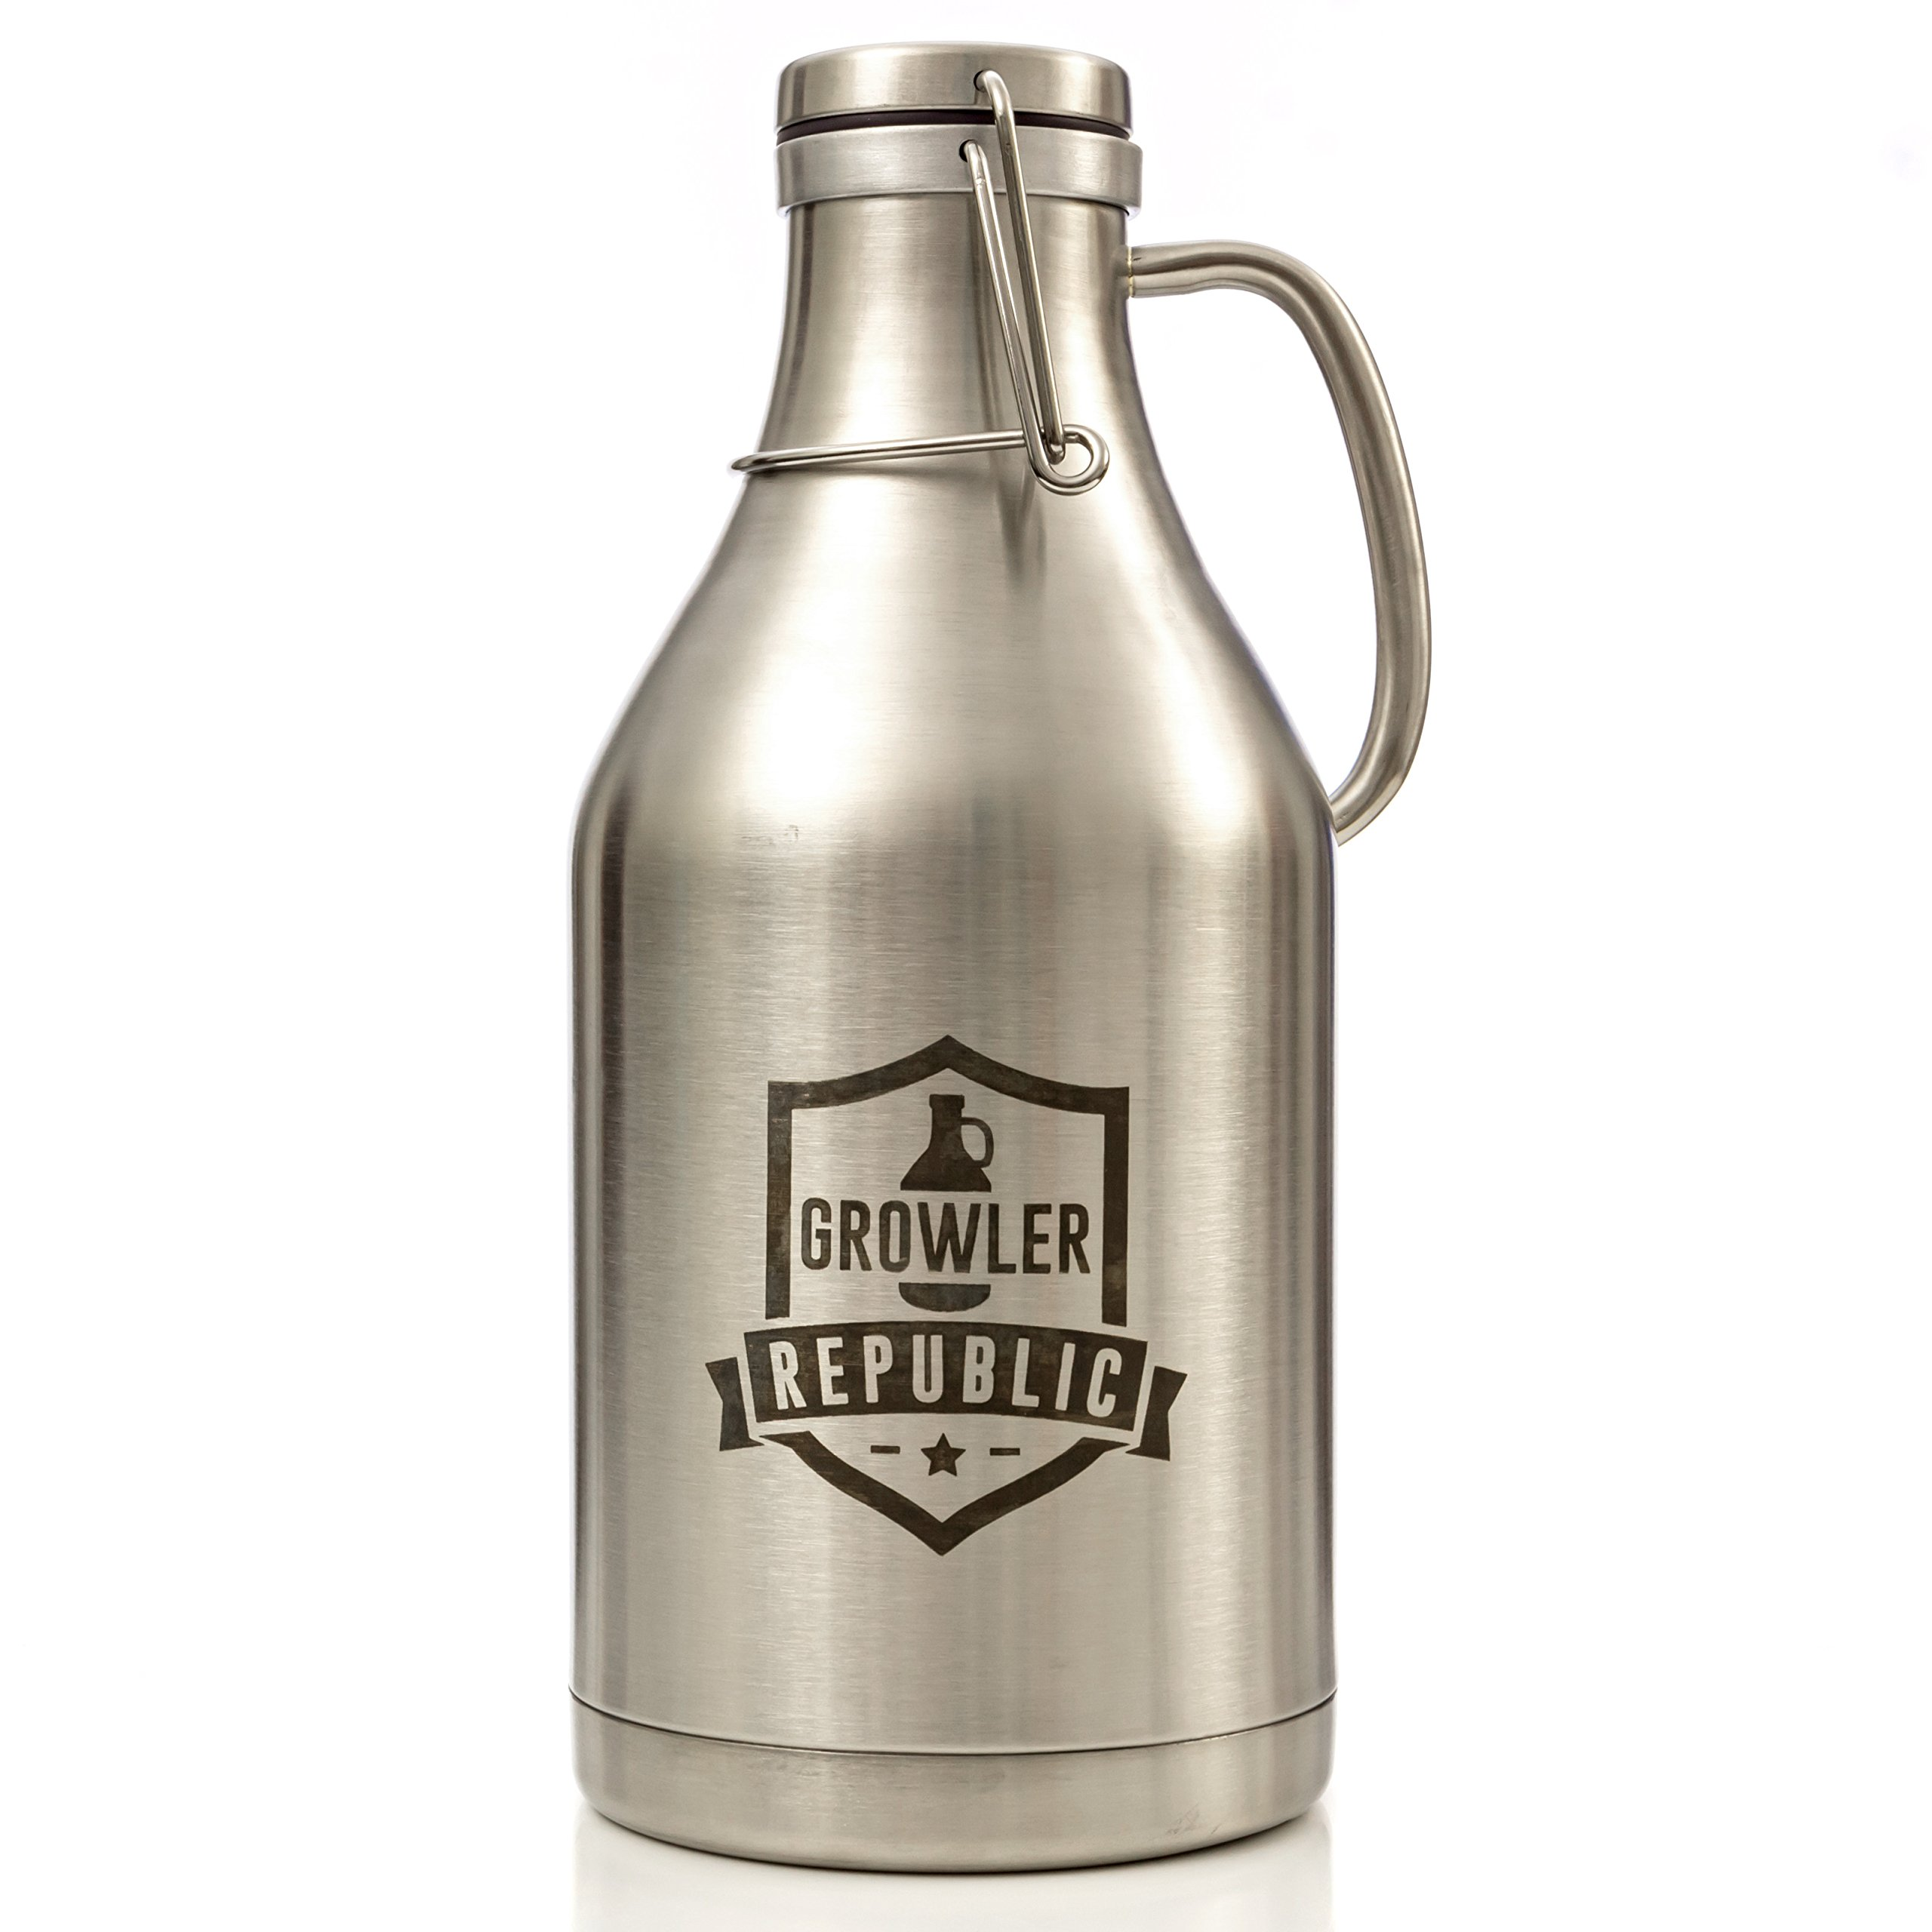 The Flagon - Stainless Steel Beer Growler With Handle & Swing Top 64oz Double Wall Insulated